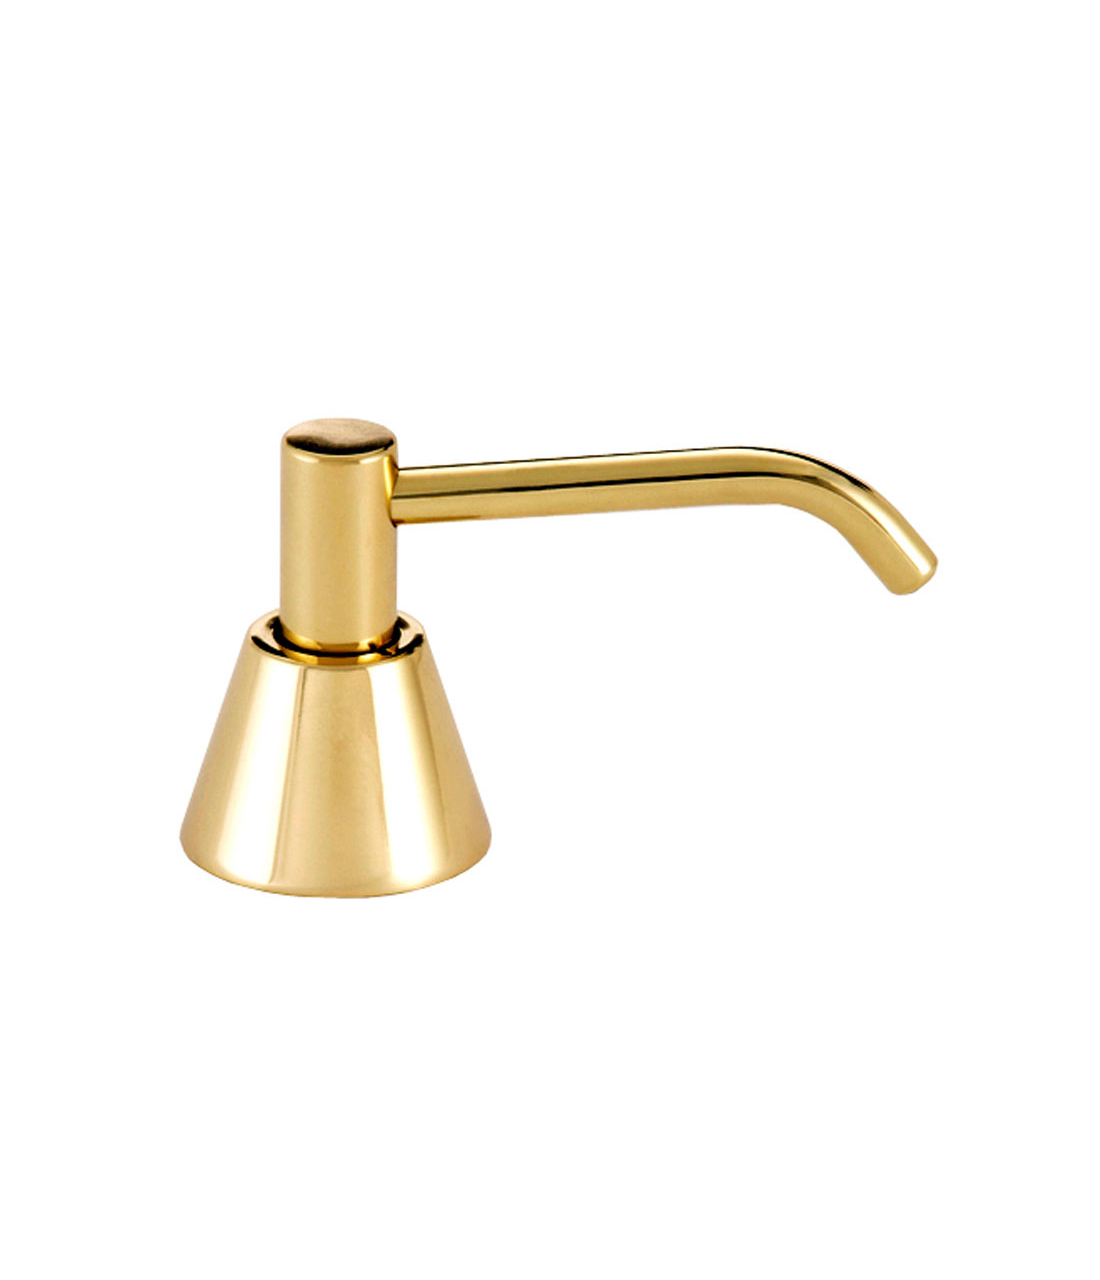 "Gamco G-64LB-6-US-3 Counter Mounted Polished Brass Soap Dispenser - 6"" Spout"